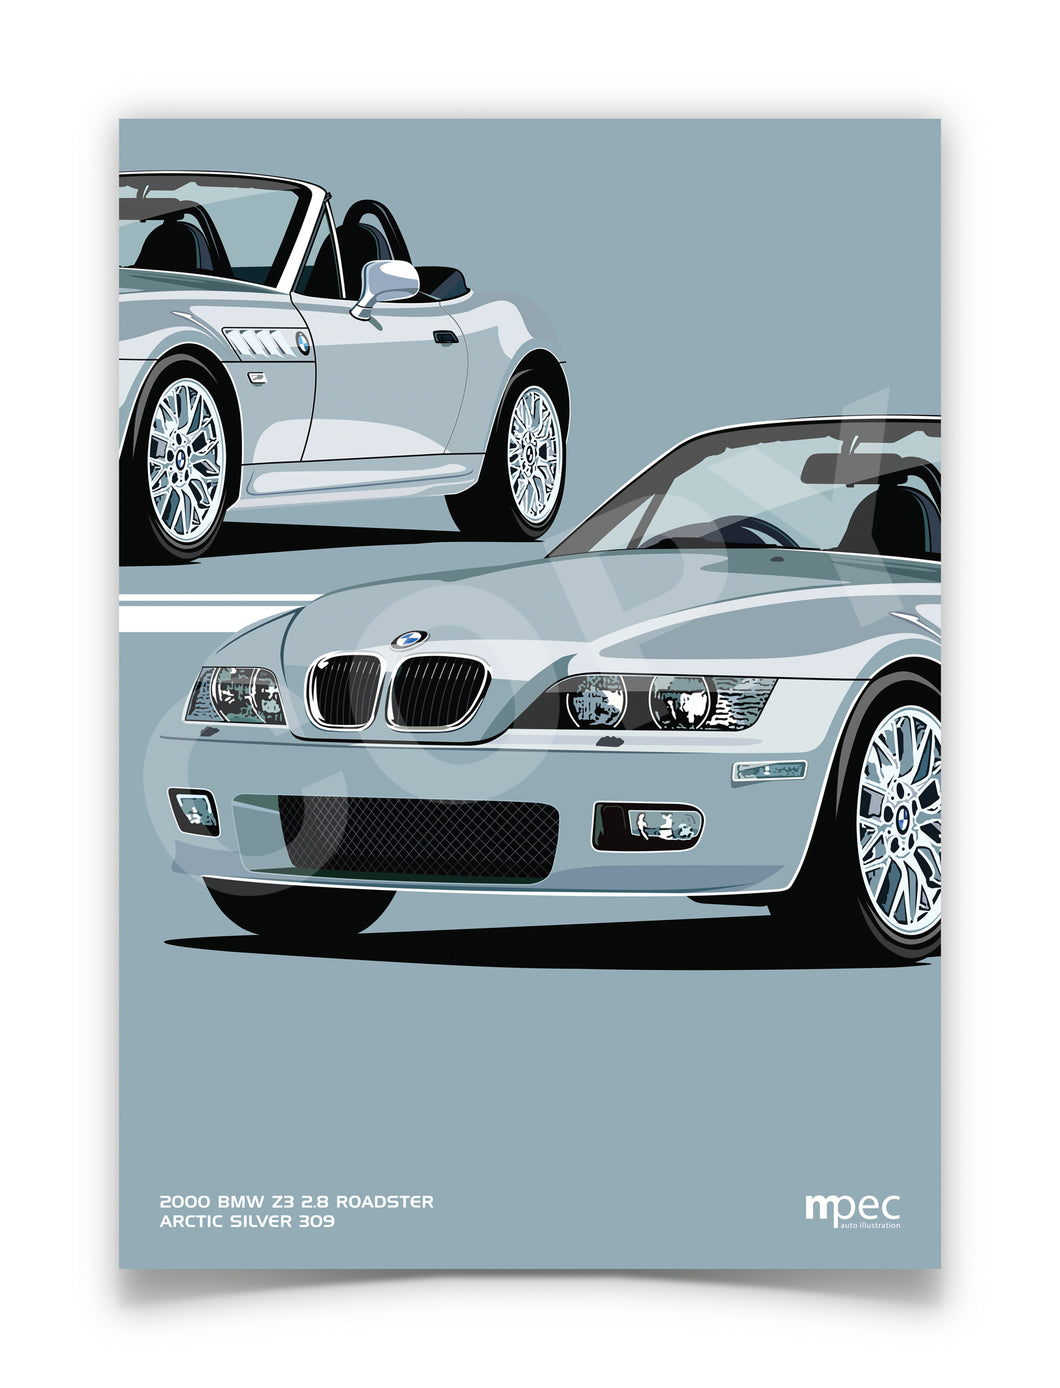 Print of 2000 BMW Z3 2.8 Roadster in Arctic Silver 309 - Close Ups